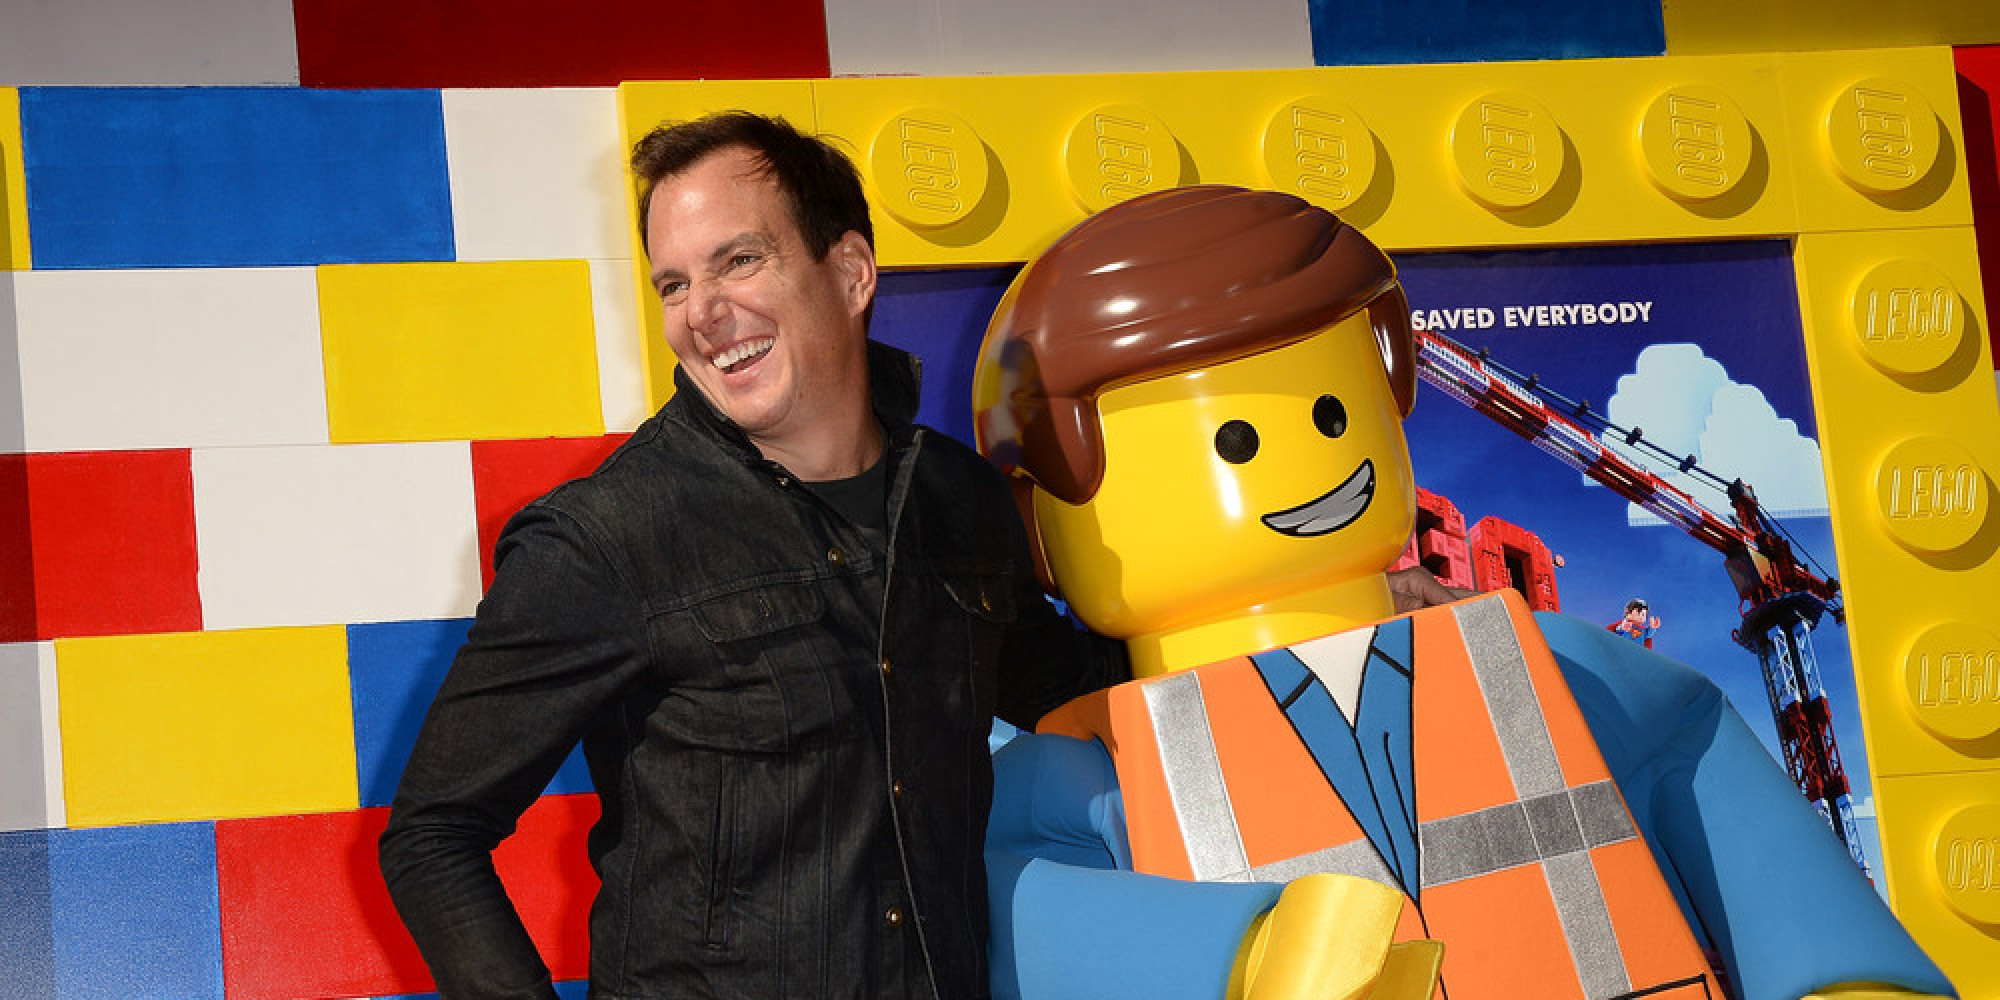 will arnett conan o'brienwill arnett height, will arnett megan fox, will arnett 30 rock, will arnett twitter, will arnett wdw, will arnett arrested development, will arnett marvel, will arnett the office, will arnett wiki, will arnett parks and rec, will arnett singing, will arnett aaron paul, will arnett conan o'brien, will arnett tumblr, will arnett kinopoisk, will arnett batman, will arnett lego batman movie, will arnett matt damon, will arnett instagram, will arnett parks and recreation